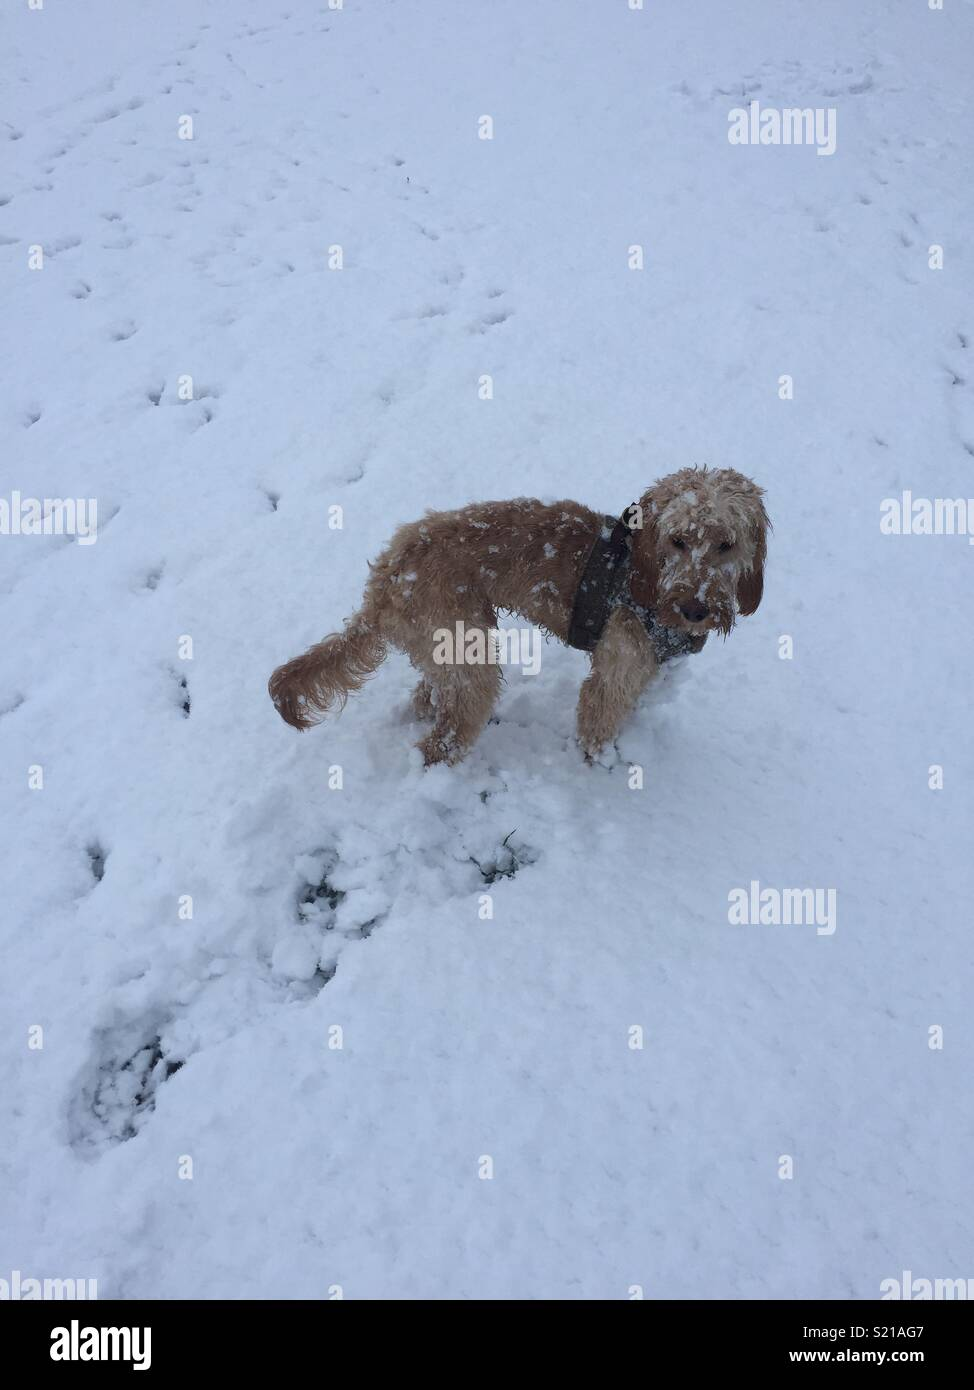 Puppy in the snow - Stock Image